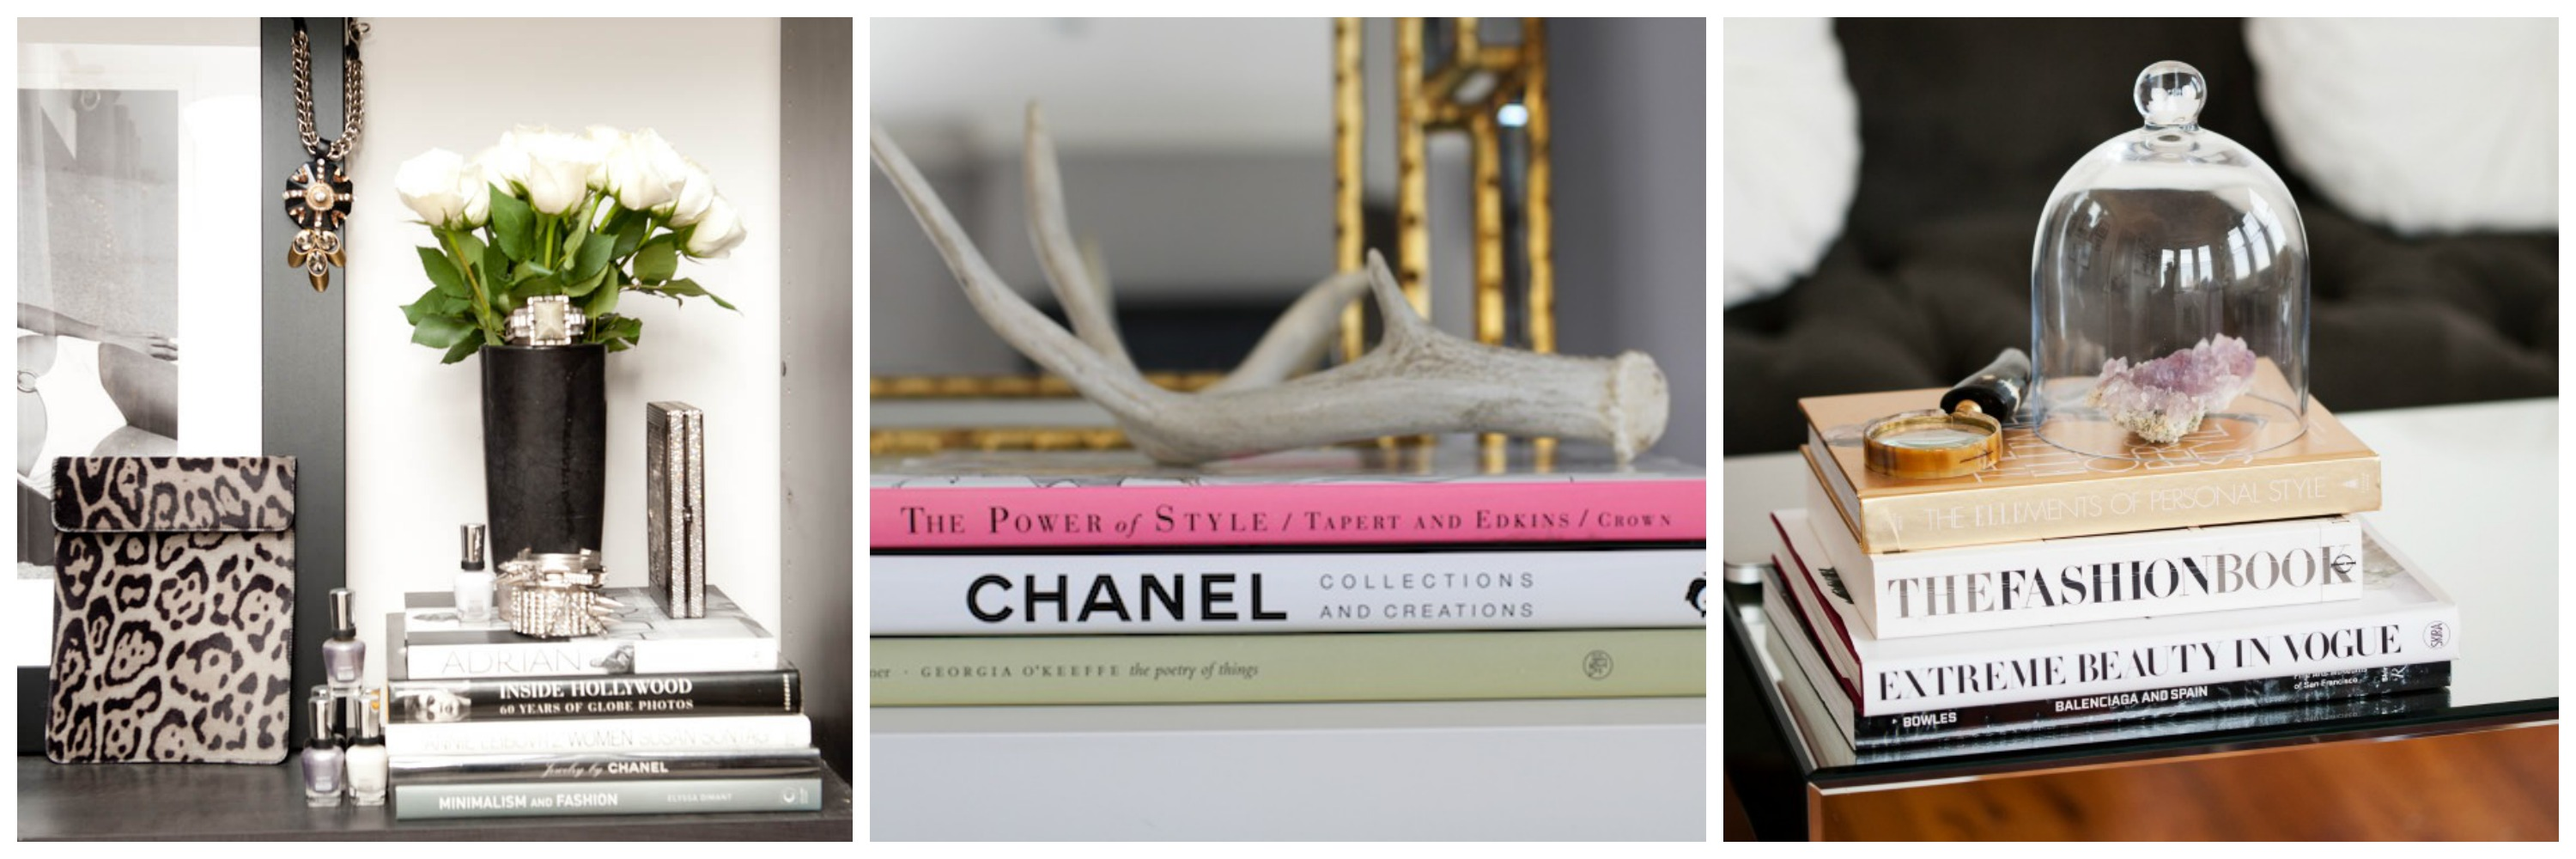 designer coffee table books | table and chair and door